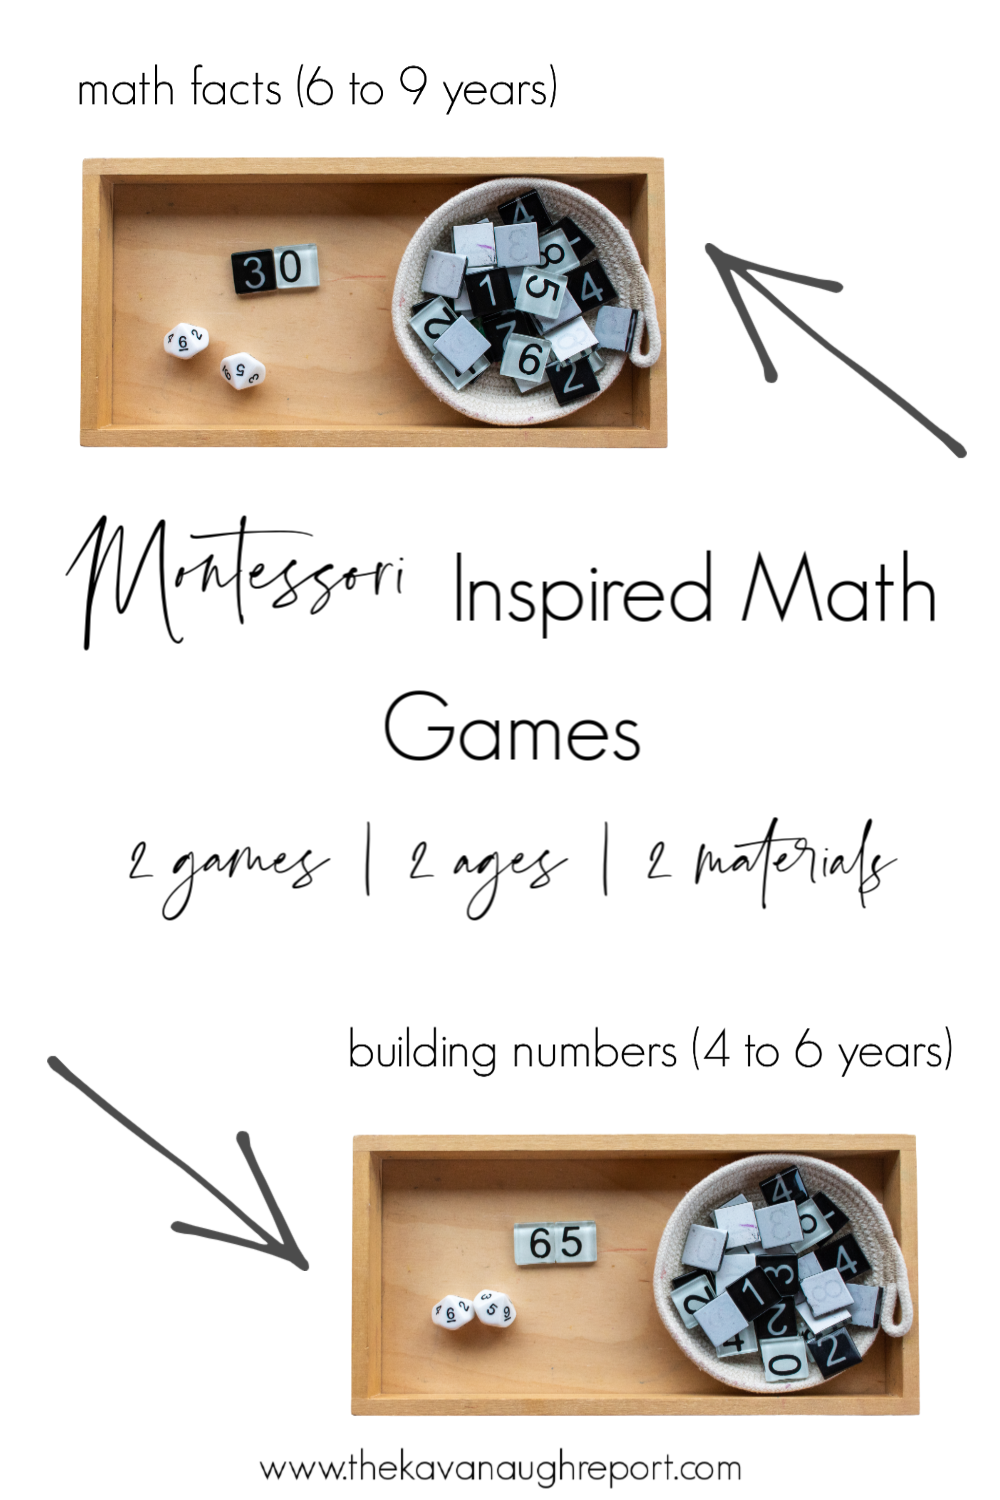 These Montessori inspired activities are perfect educational ways to bring math into your home for older kids. This easy setup helps to make math concrete and fun.